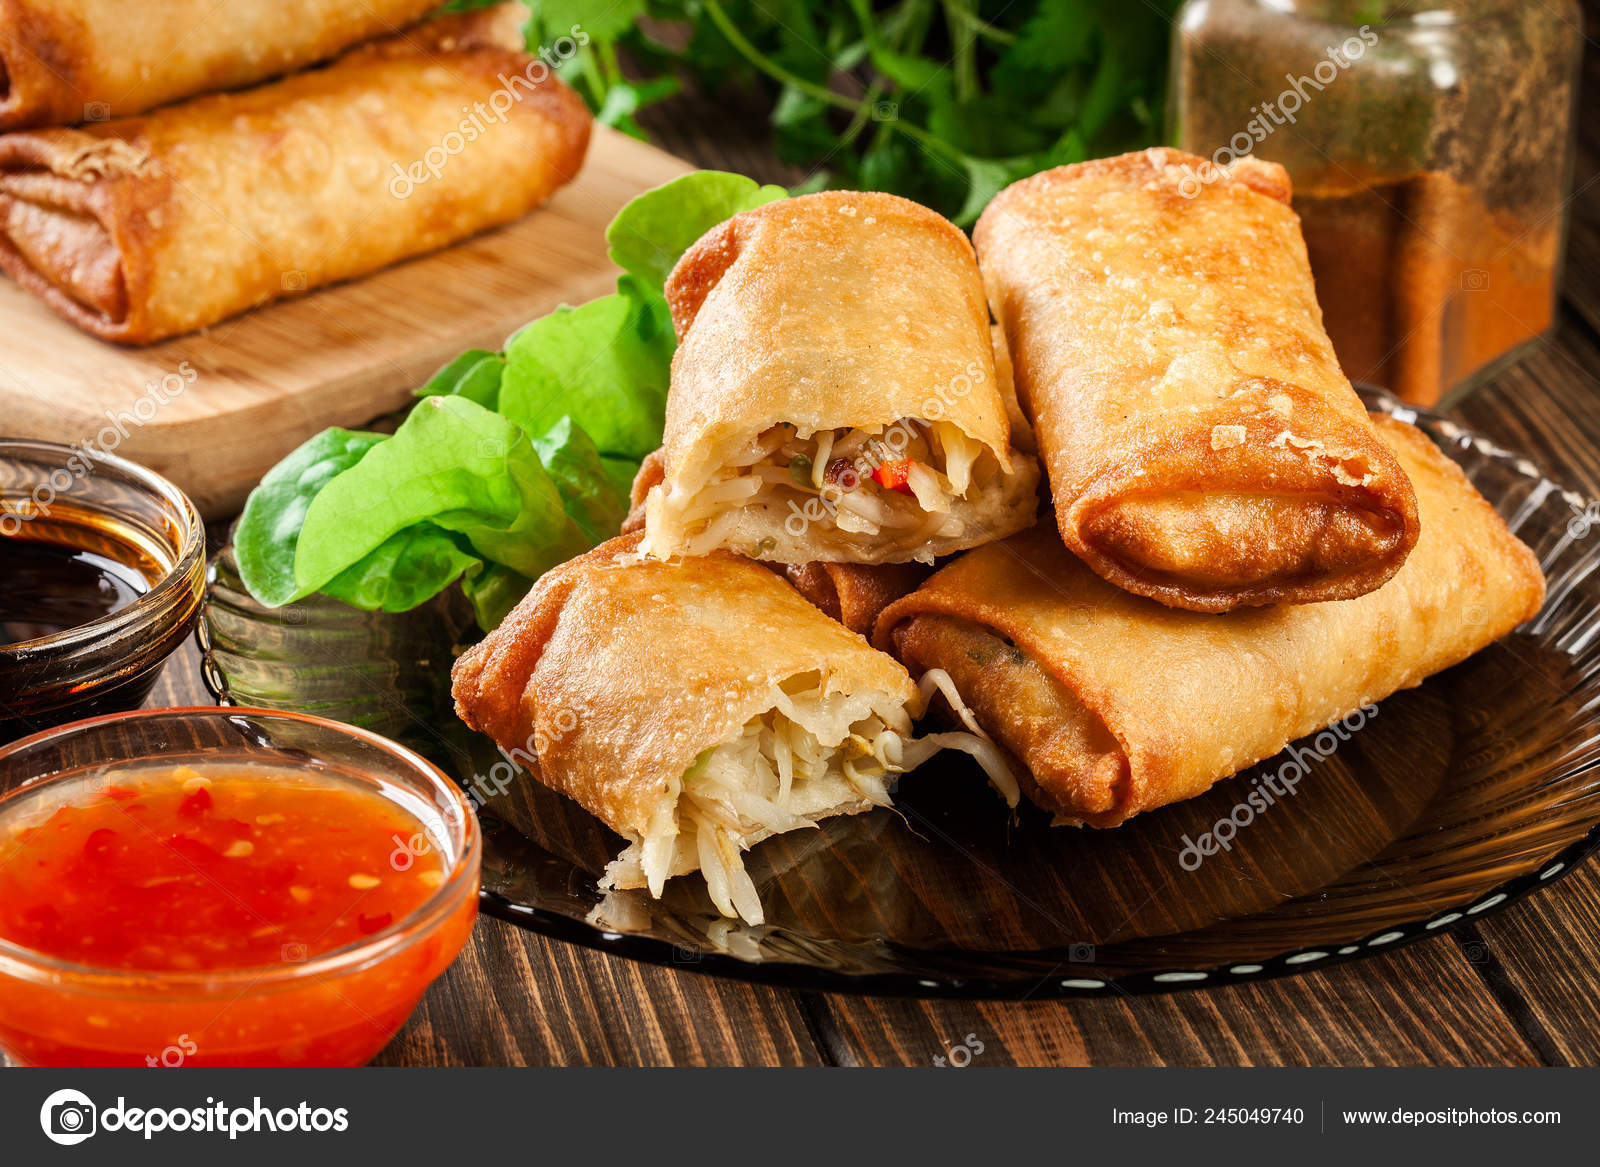 Spring Rolls Chicken Vegetables Served Sweet Chili Sauce Soy Sauce Stock Photo Image By C Fotek 245049740